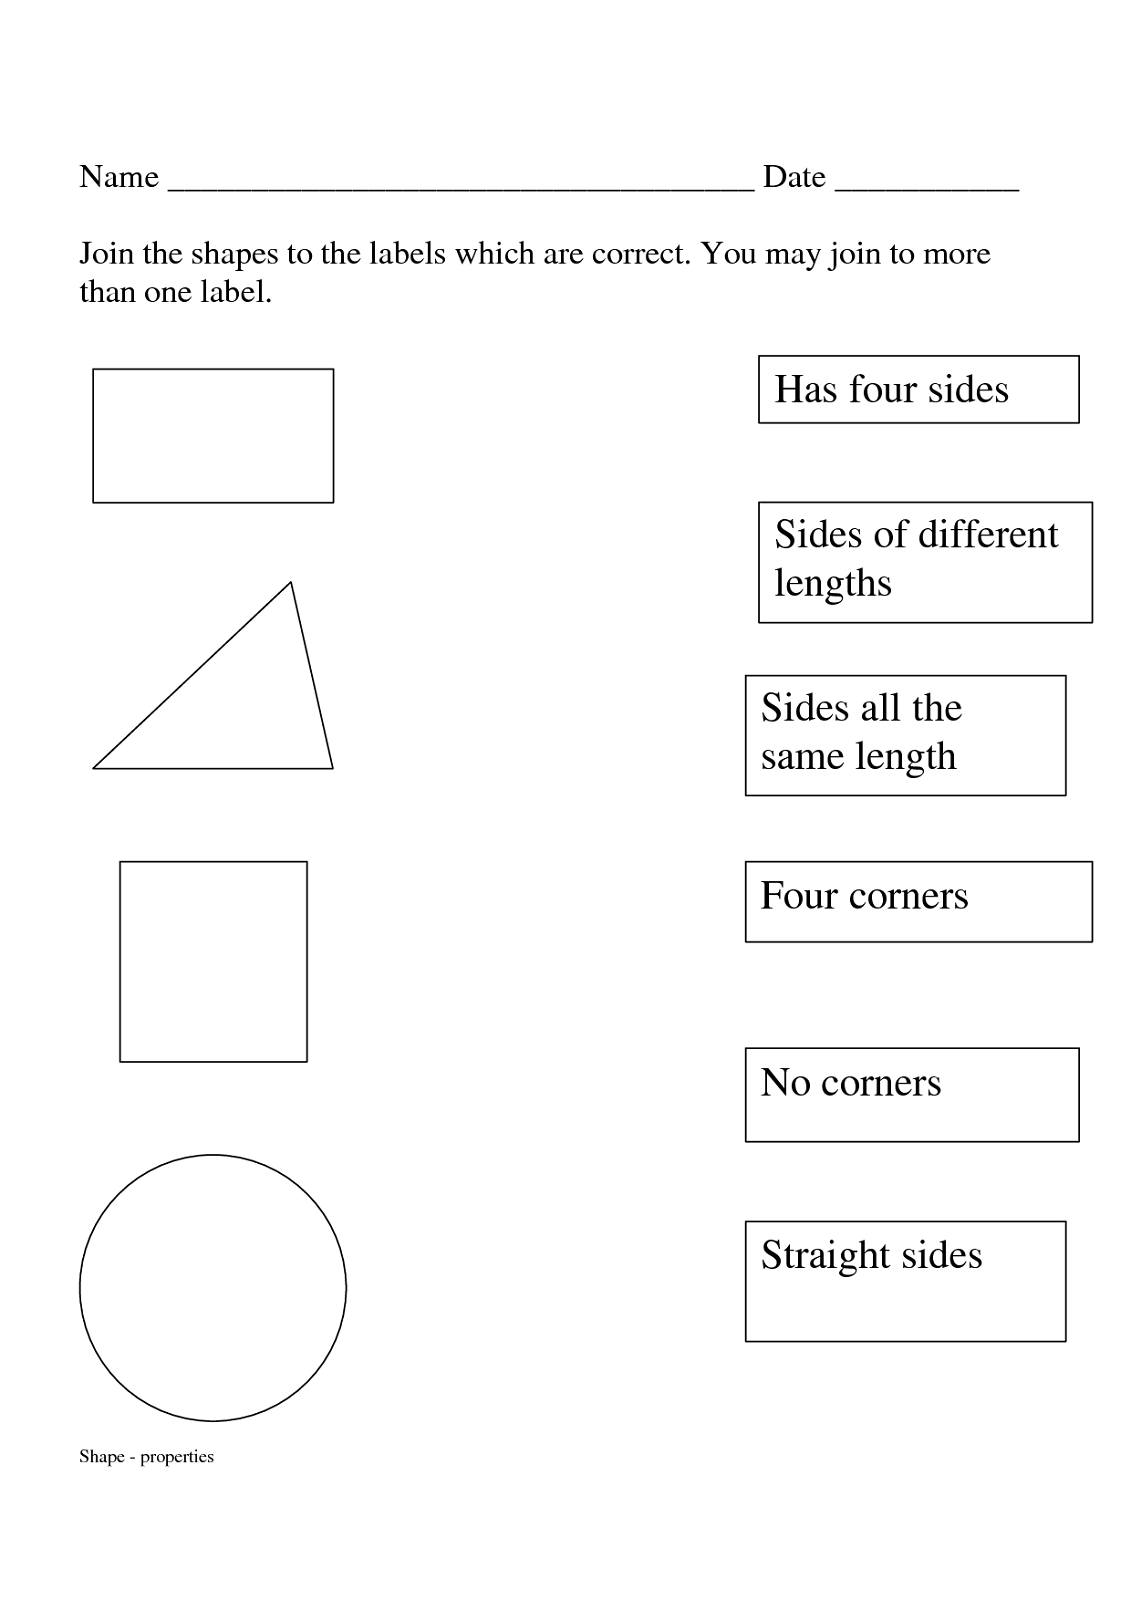 Shapes and Sides Worksheets to Print | Activity Shelter